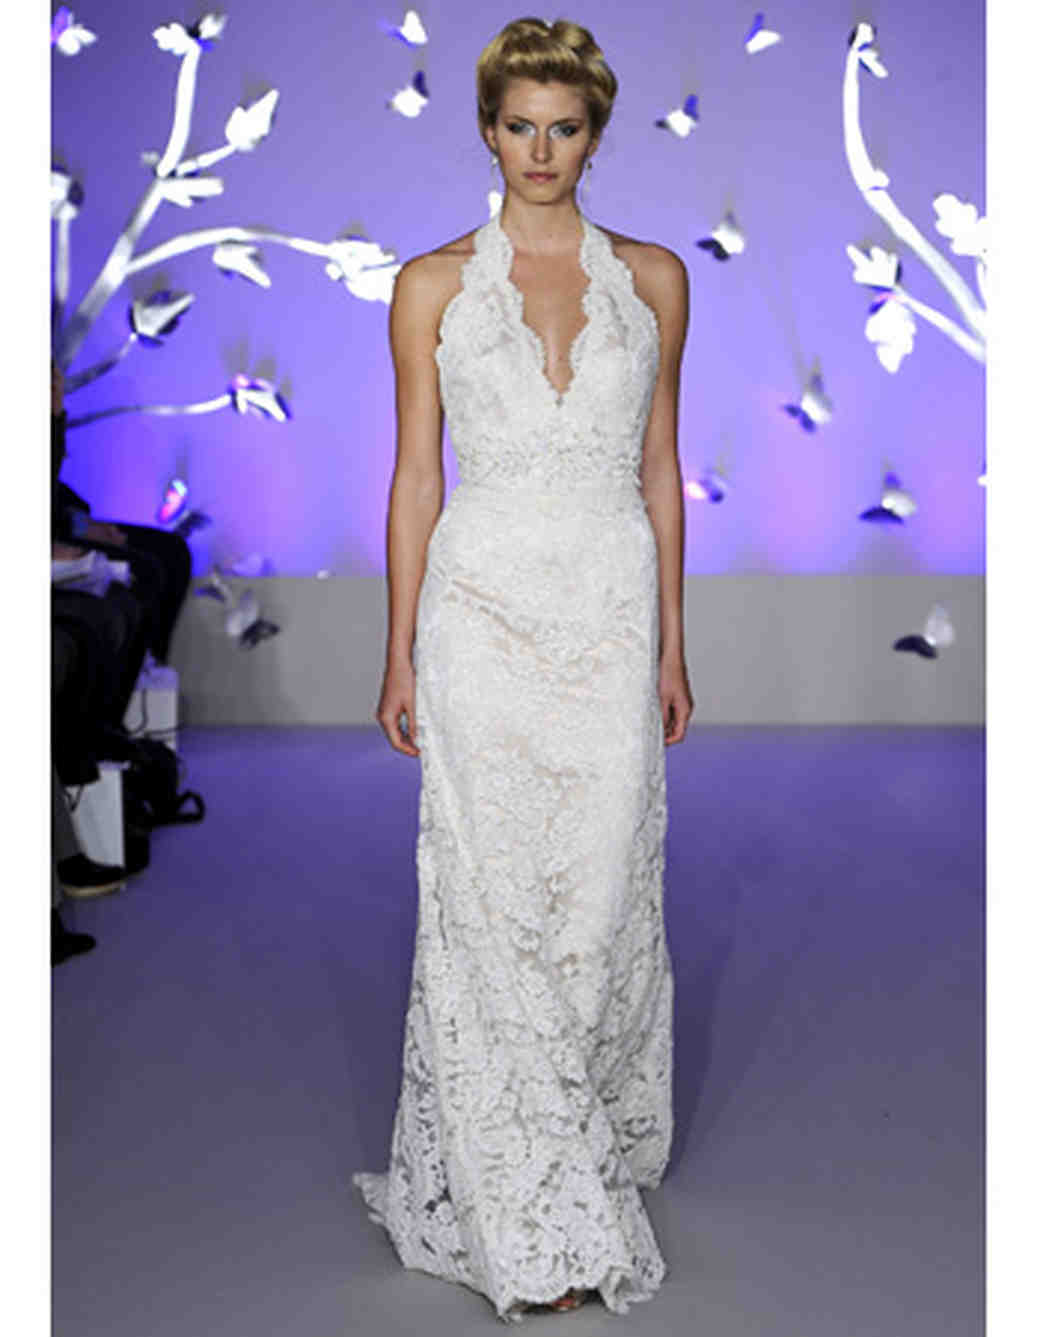 Modern Lace Wedding Dresses from Spring 2012 Bridal Fashion Week ...